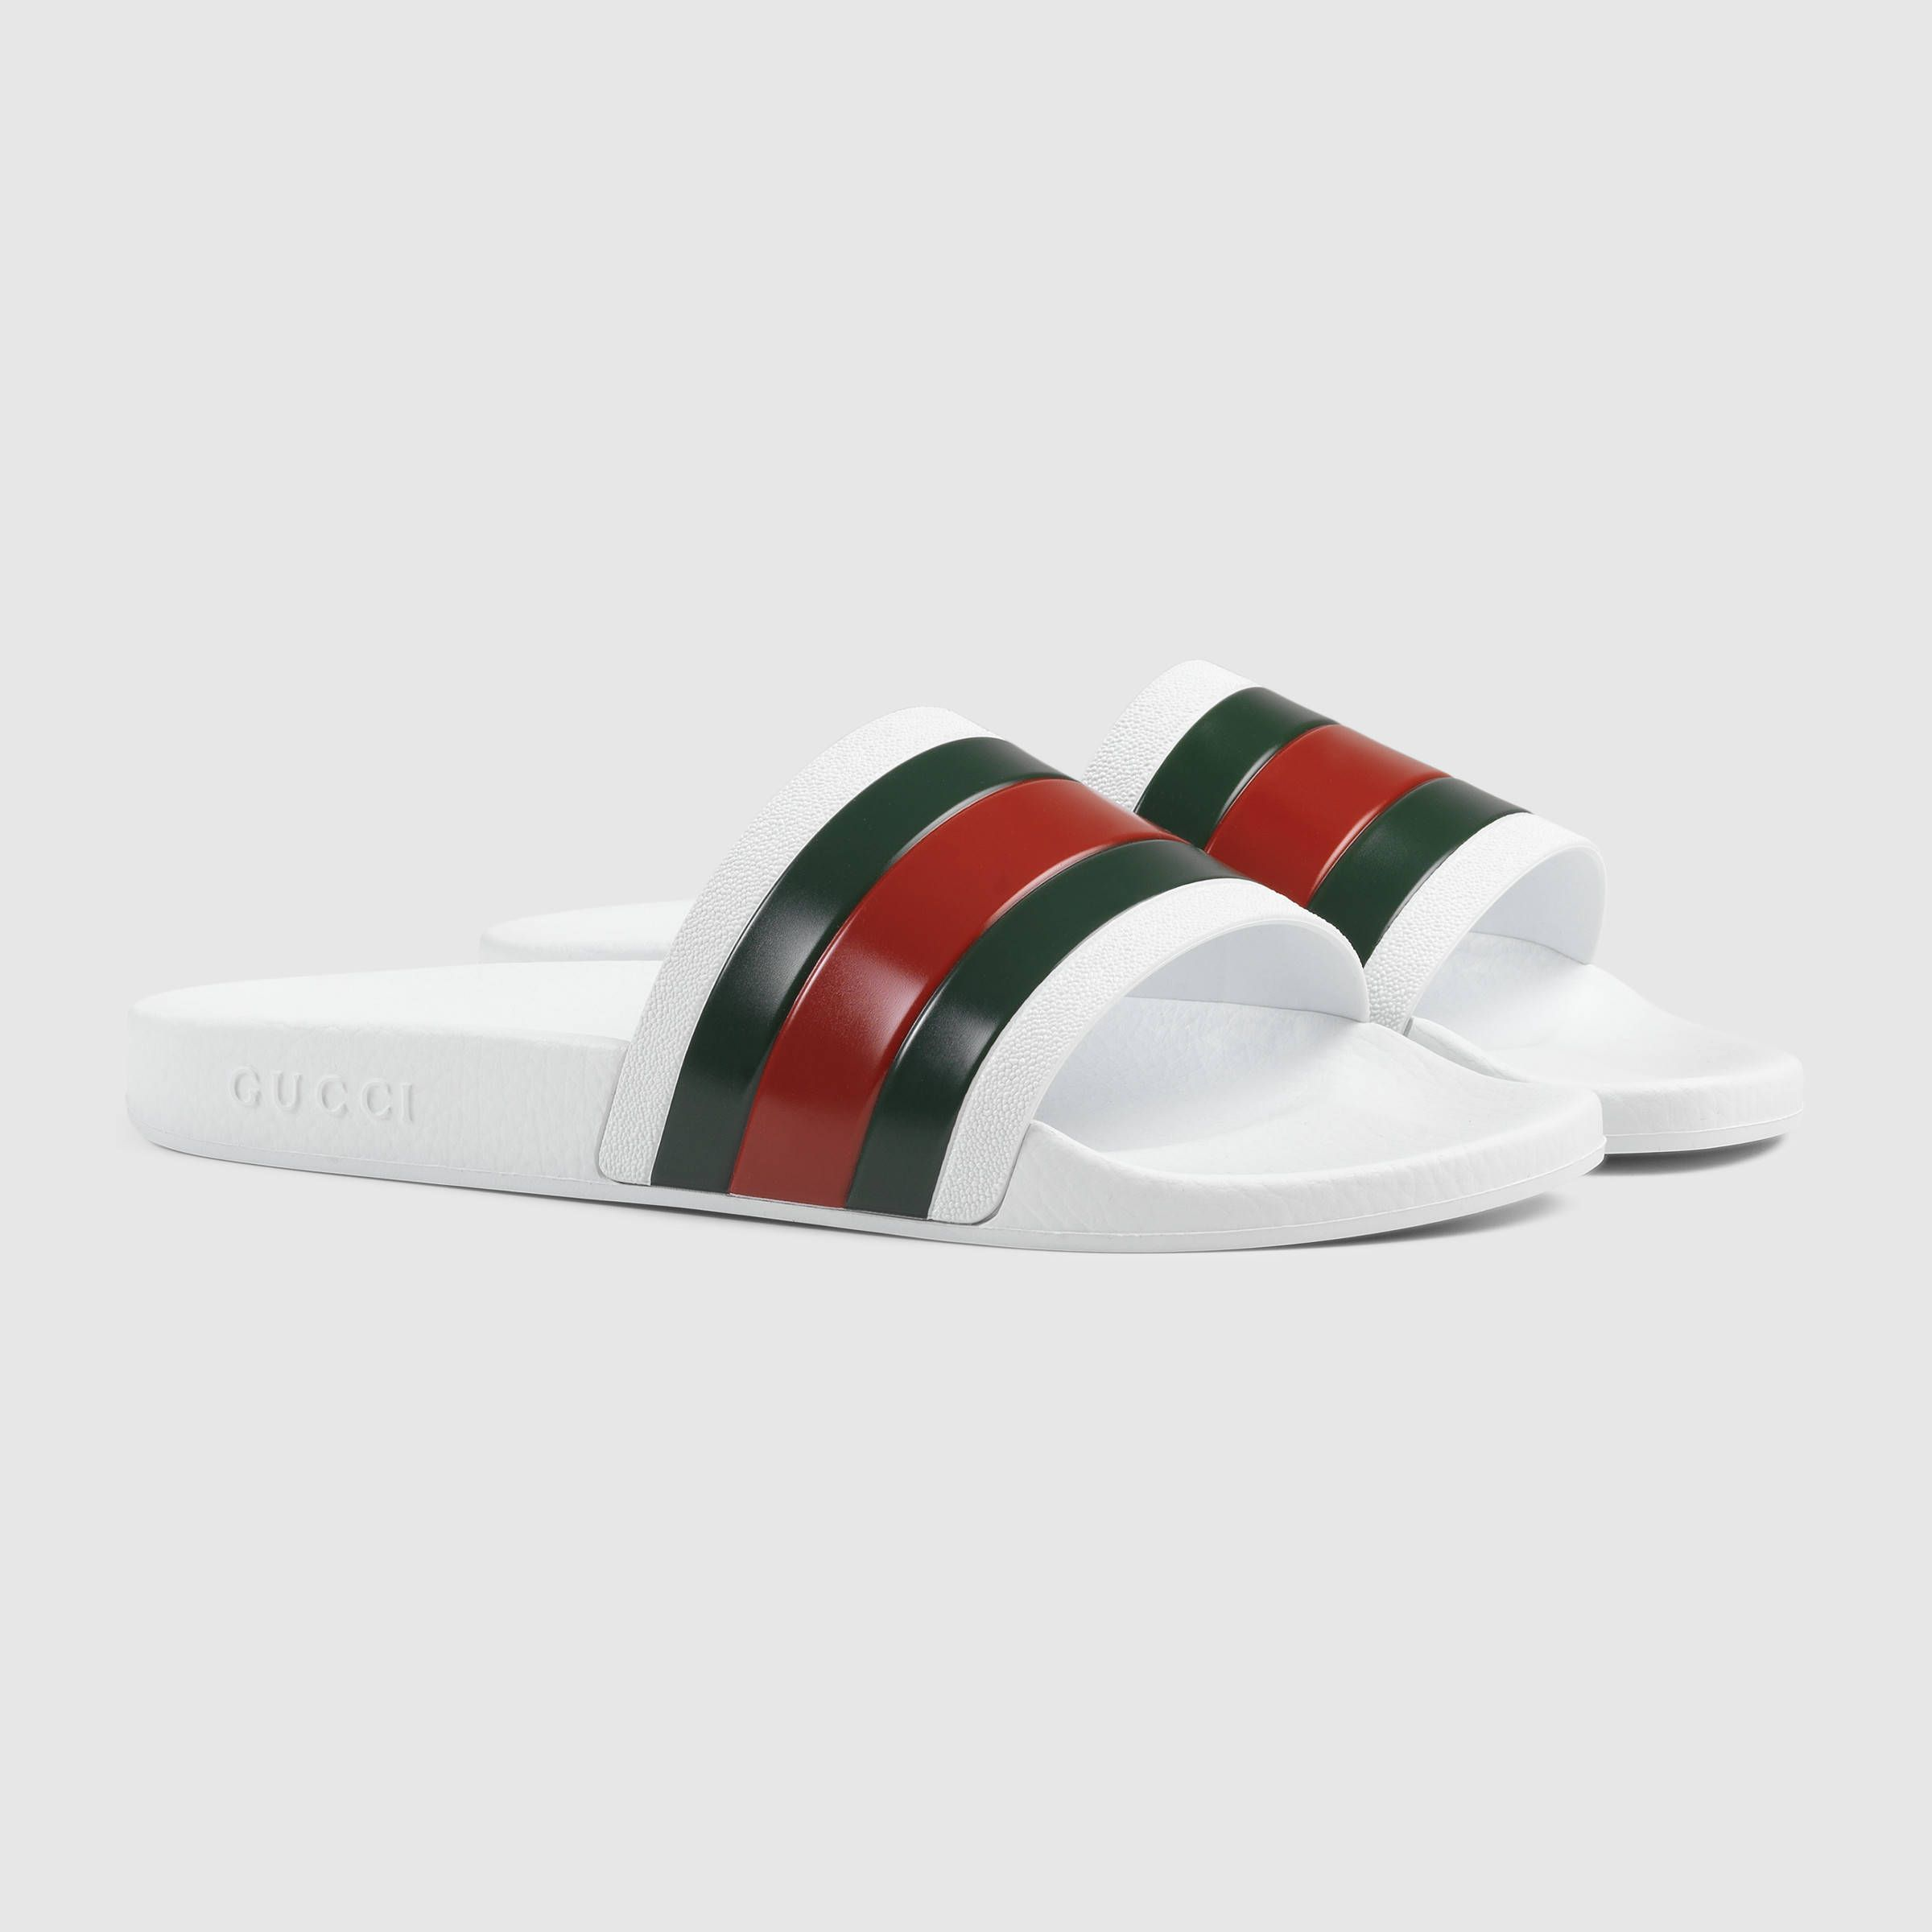 0145b09ca Gucci Men - Rubber slide sandal - $160 | Summer | Gucci outfits ...